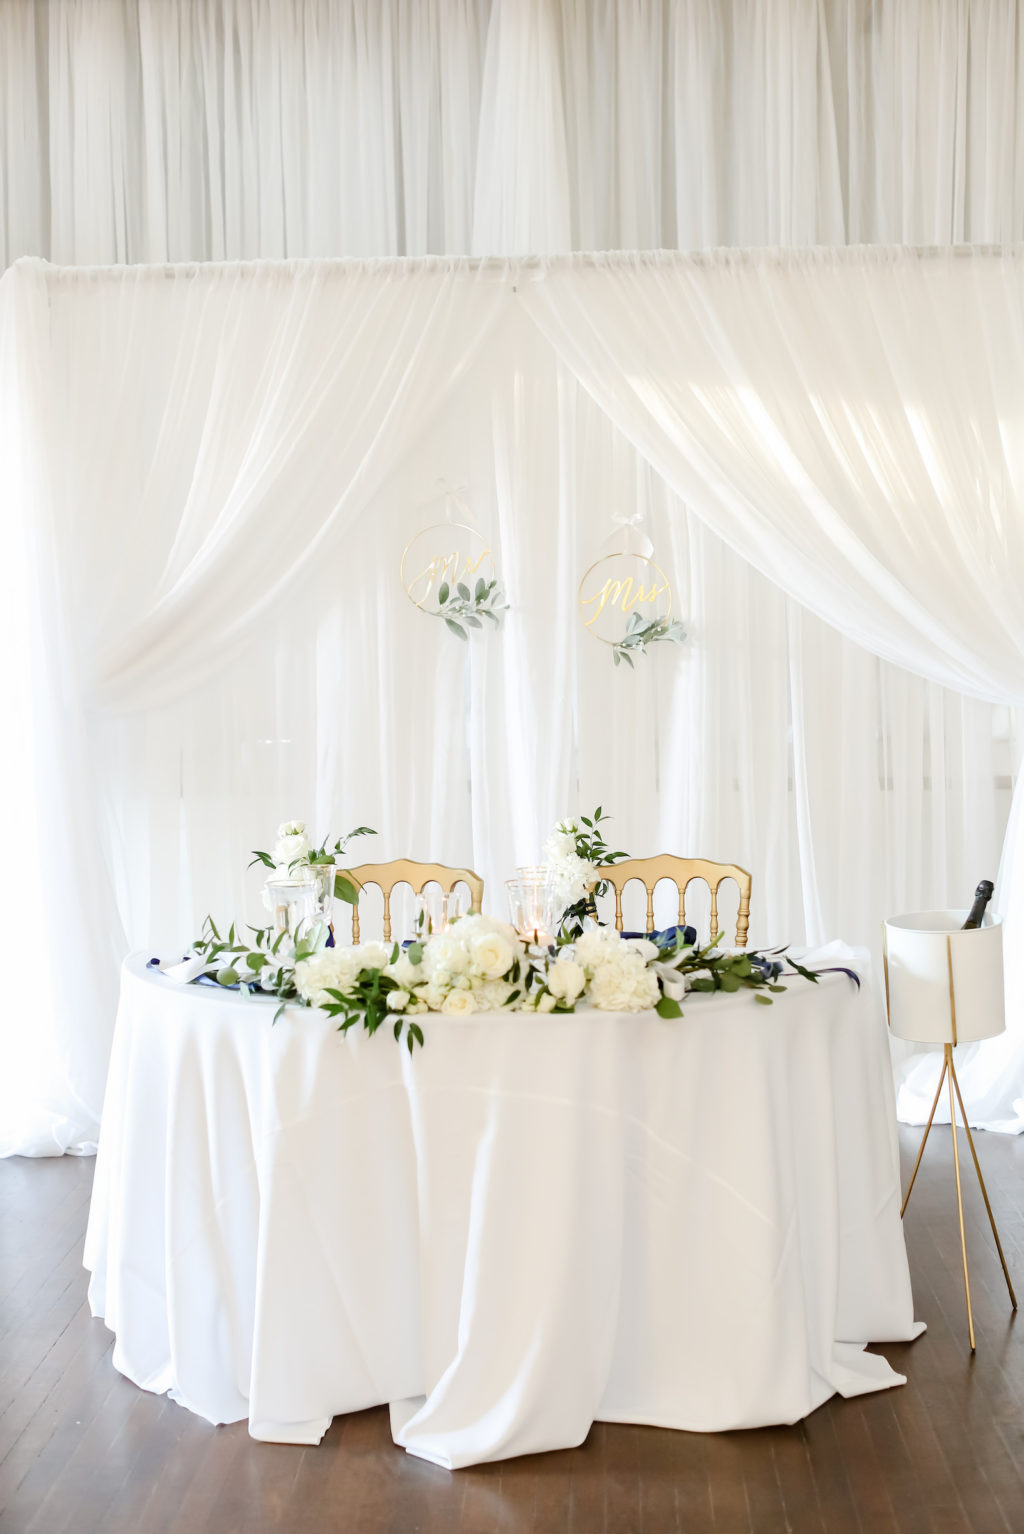 Classic Wedding Reception Decor, Sweetheart Table with White Linen Backdrop, Hydrangeas, Roses and Greenery Floral Bouquets, Gold Chairs | Tampa Bay Wedding Photographer Lifelong Photography Studio | Wedding Planner Core Concepts | Wedding Rentals A Chair Affair | Kate Ryan Event Rentals